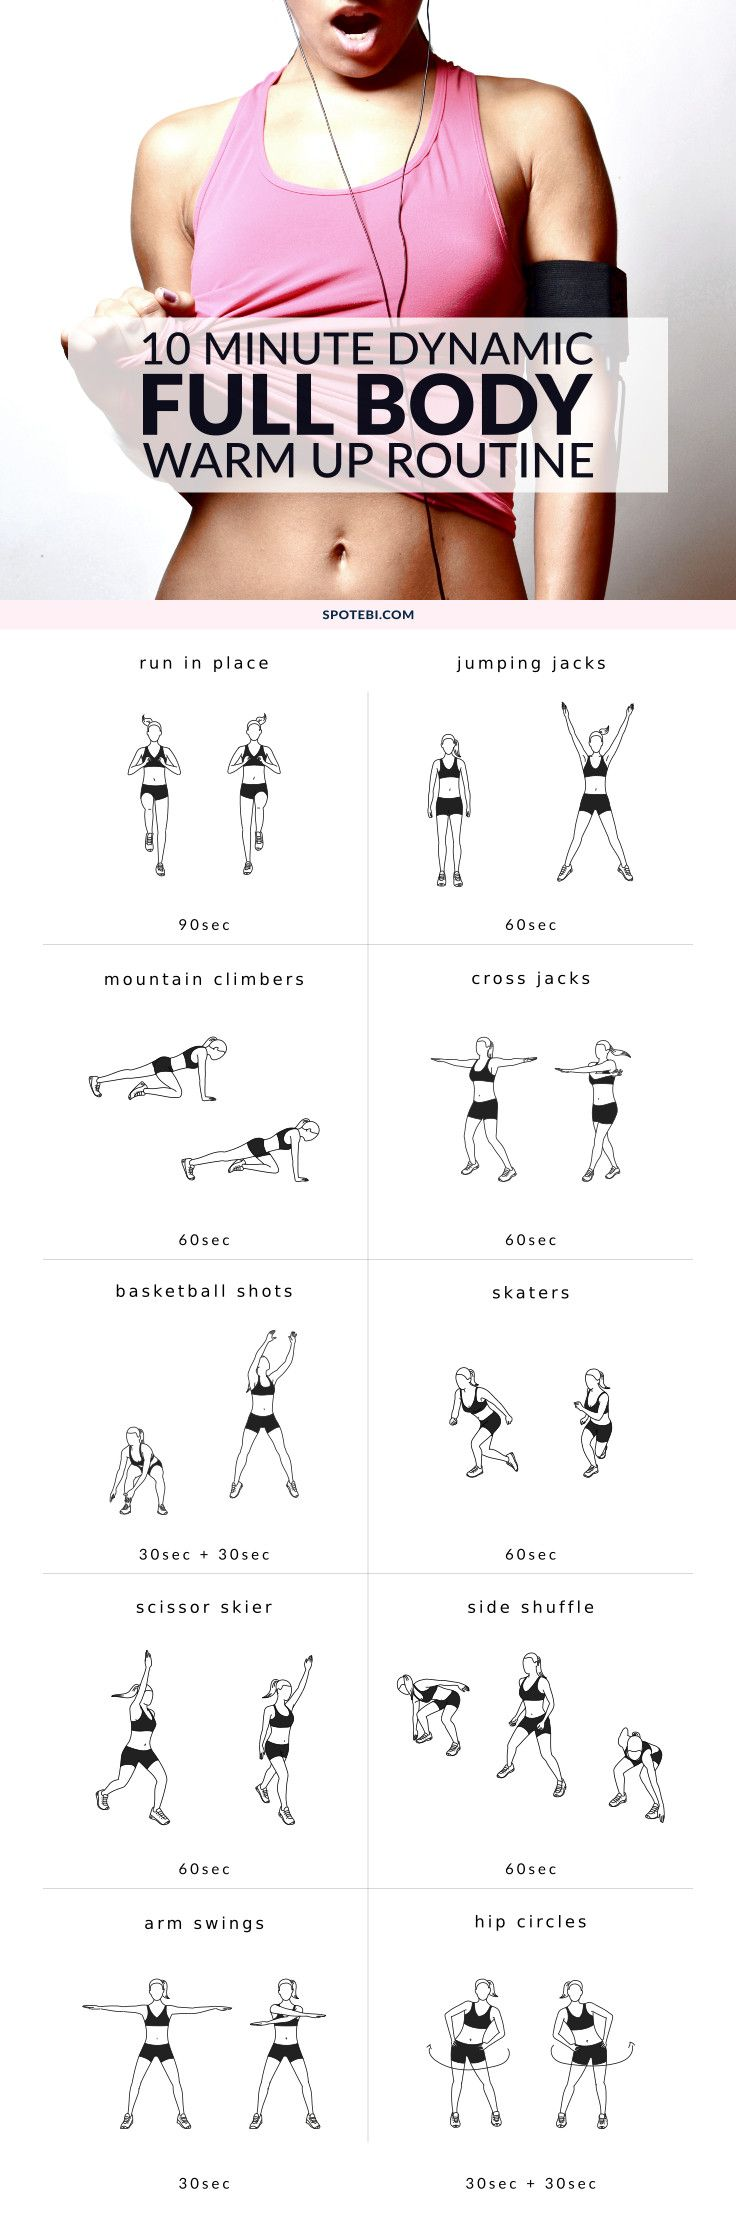 Optimize your performance and improve your flexibility with this dynamic full body warm up routine. A 10 minute circuit that will increase body temperature, promote blood flow and prepare your heart for more work. http://www.spotebi.com/workout-routines/10-minute-dynamic-full-body-warm-up-routine/